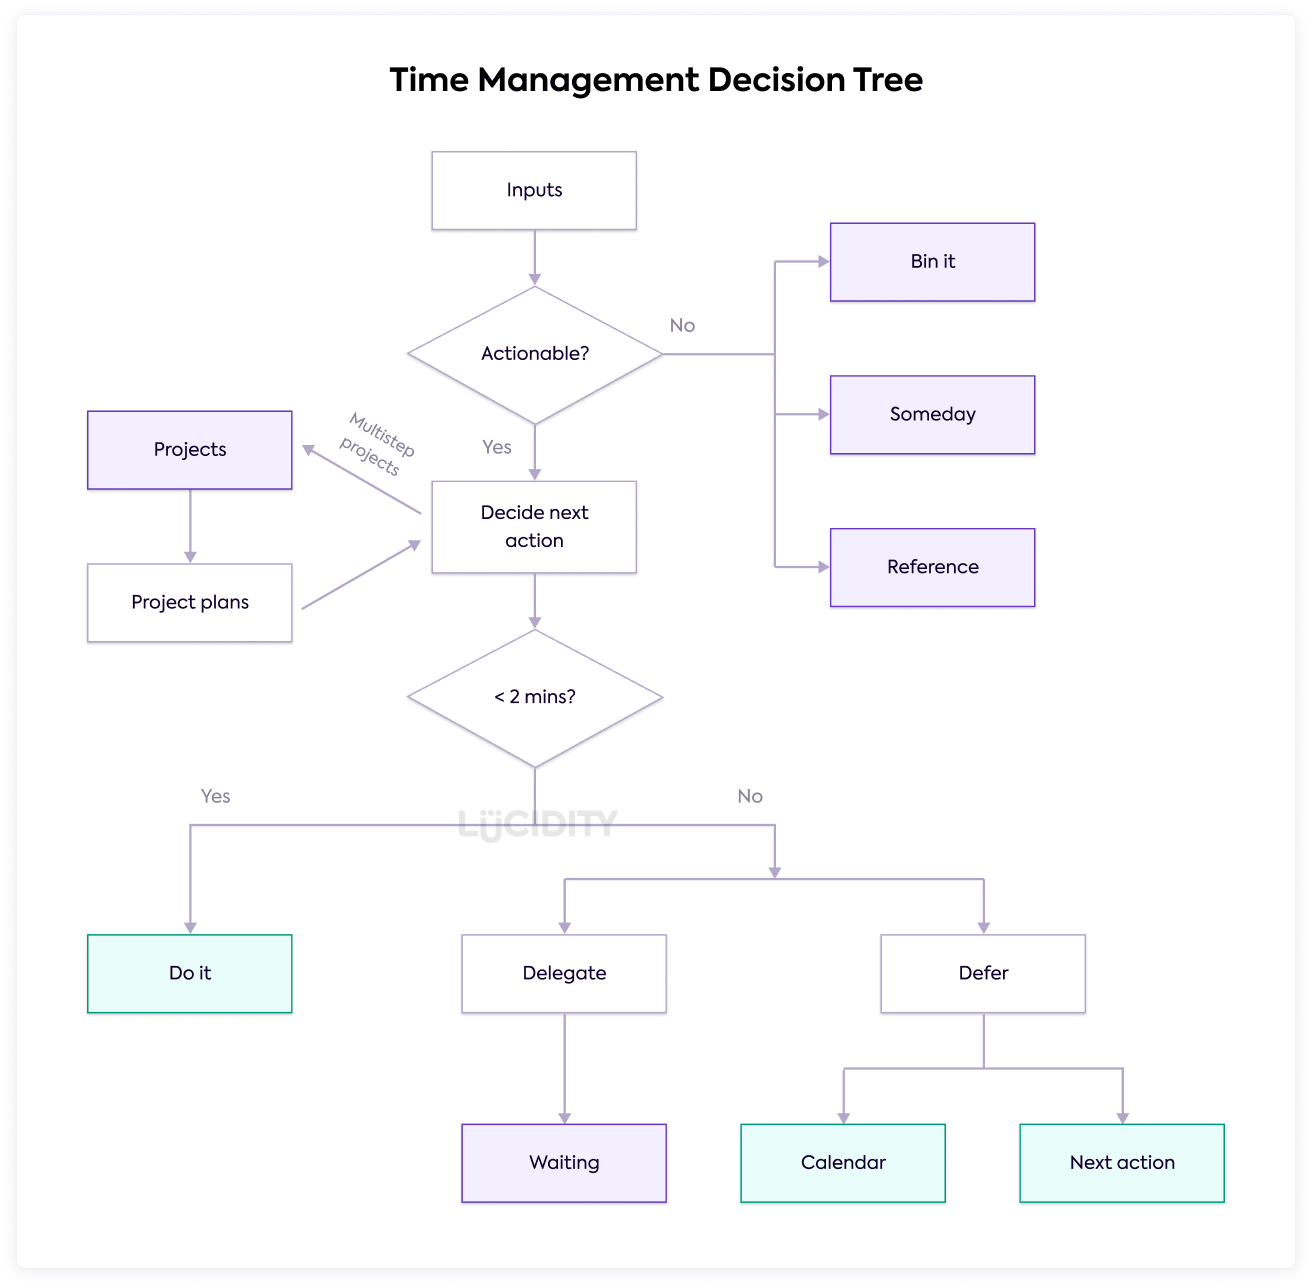 Time management decision tree to improve your productivity and performance